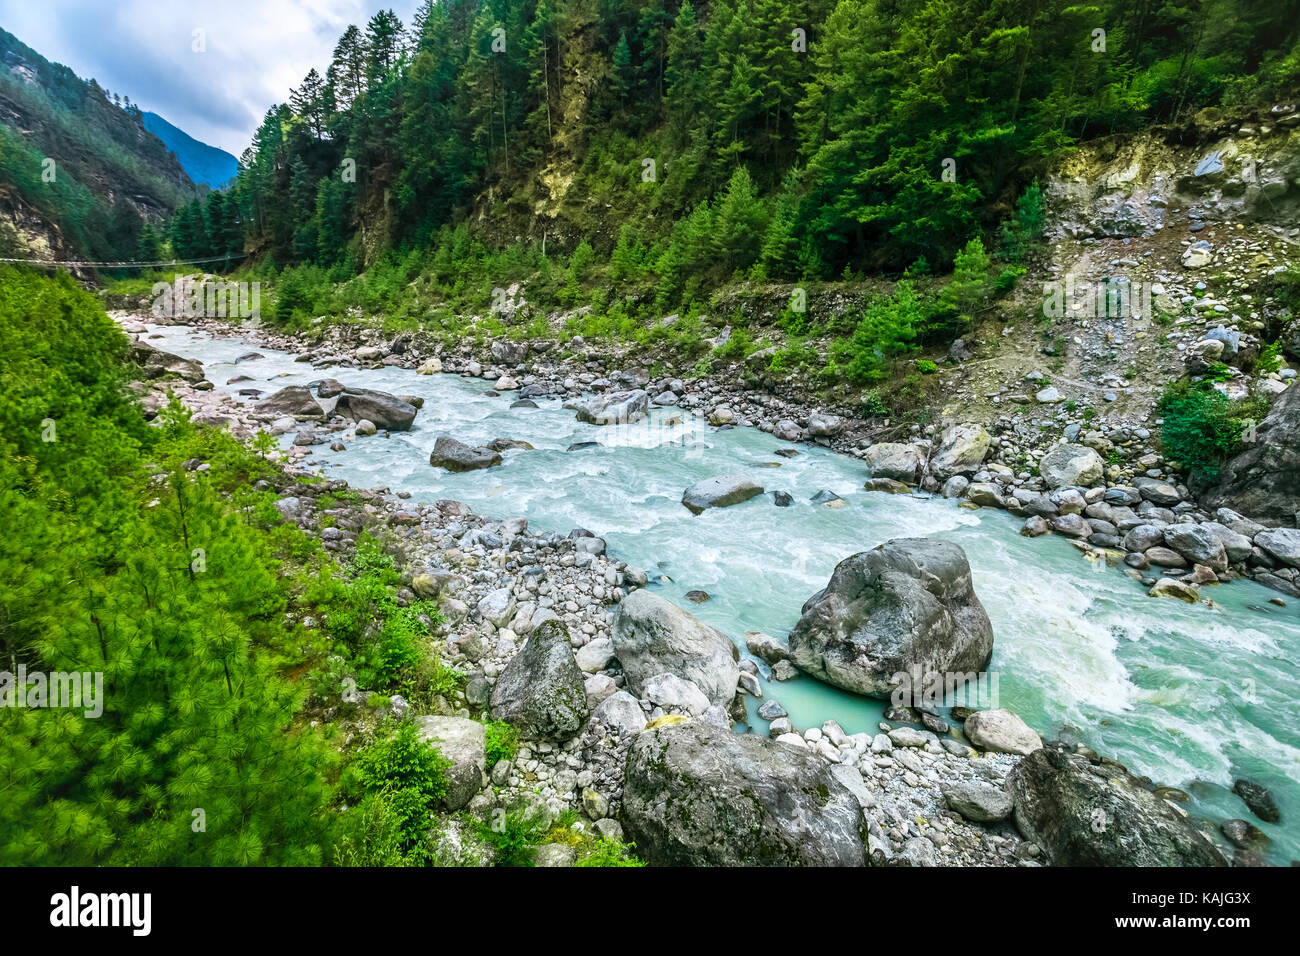 Mountain Valley Beautiful River Landscape And Mountain Forest In